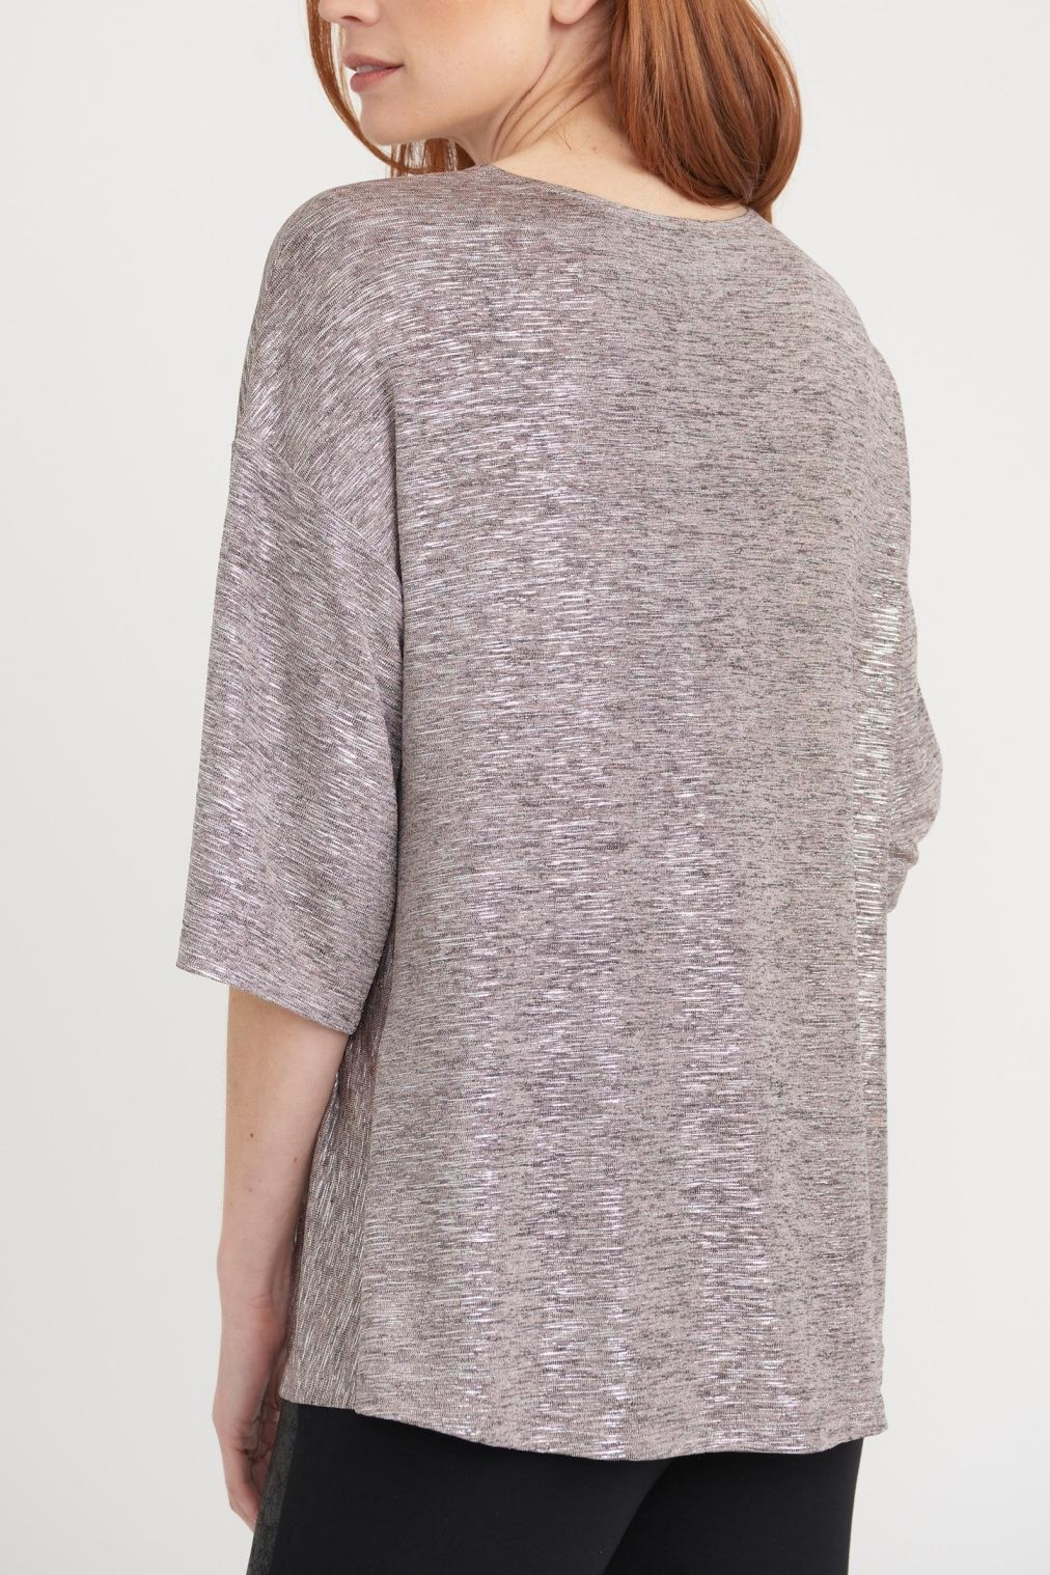 Joseph Ribkoff Pale Pink Shimmer Top - Front Full Image